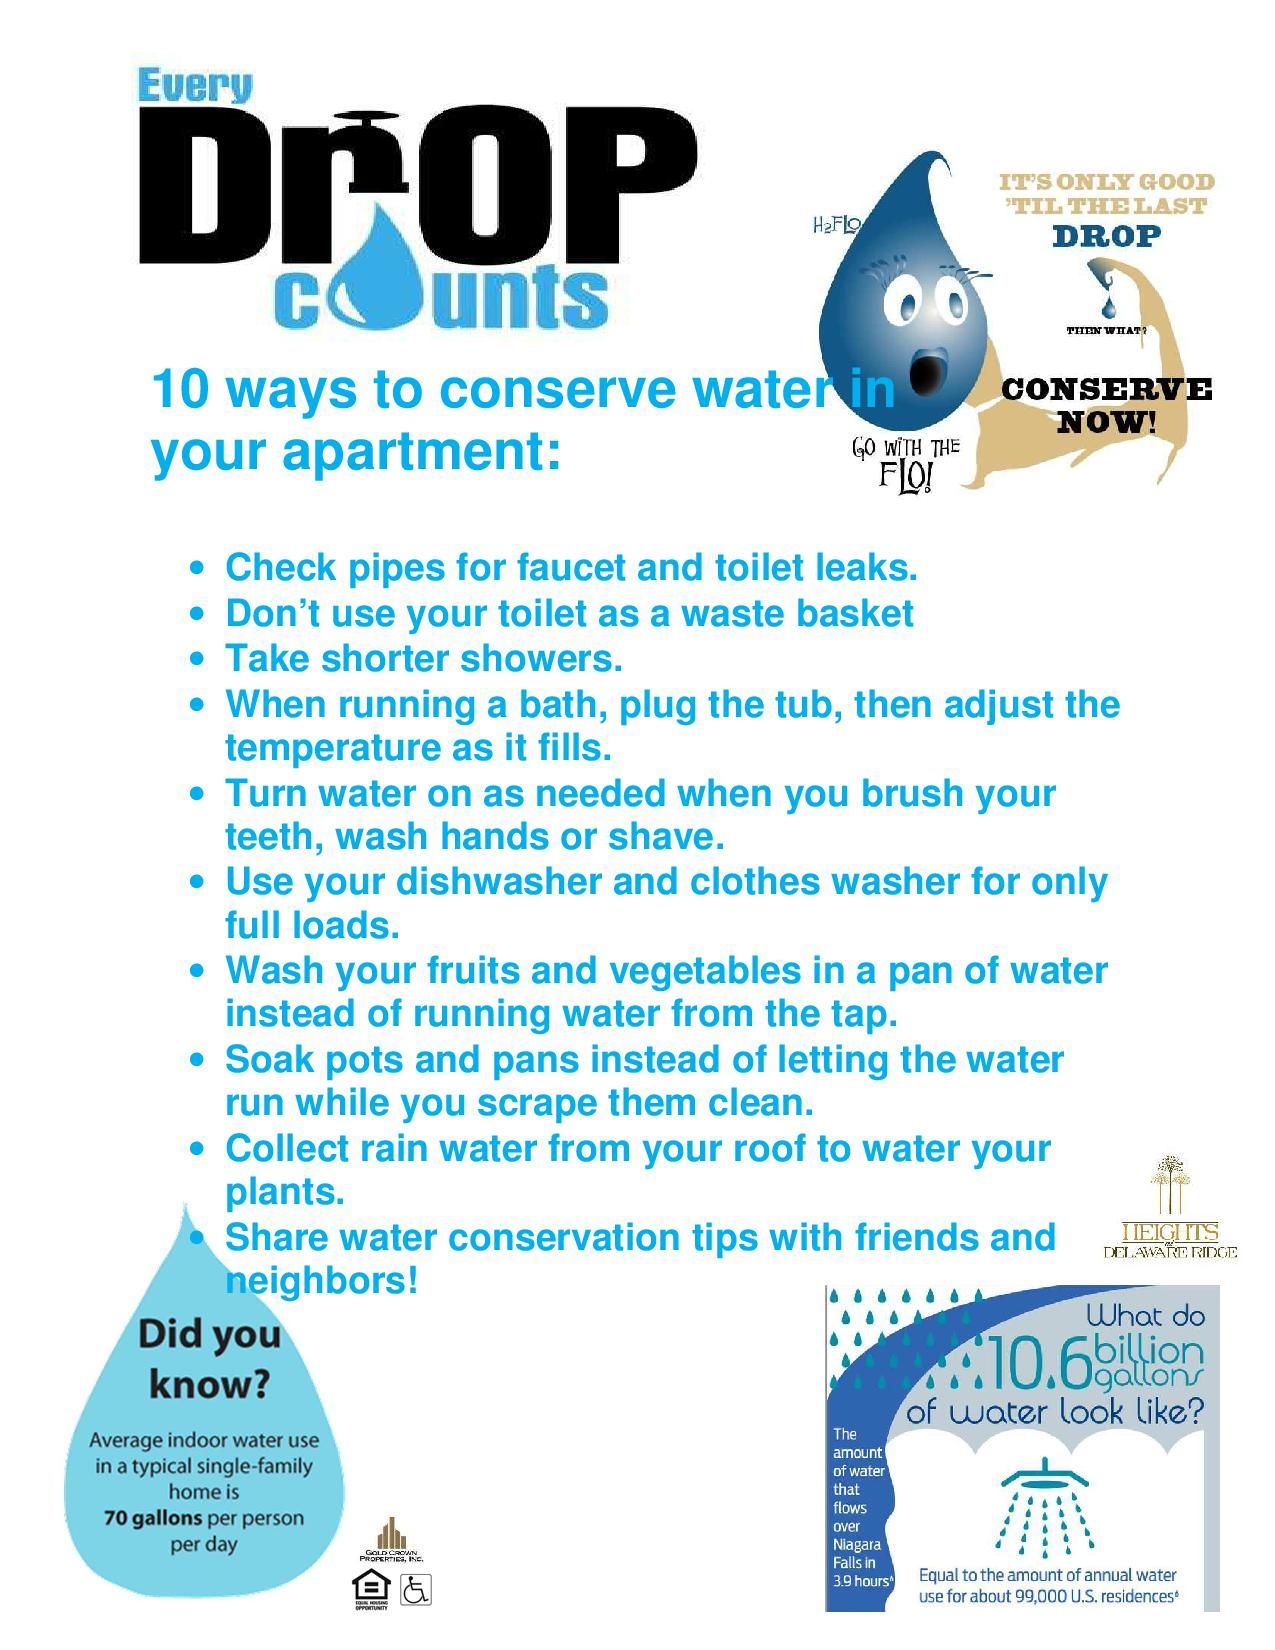 Conserve Water In Your Apartment